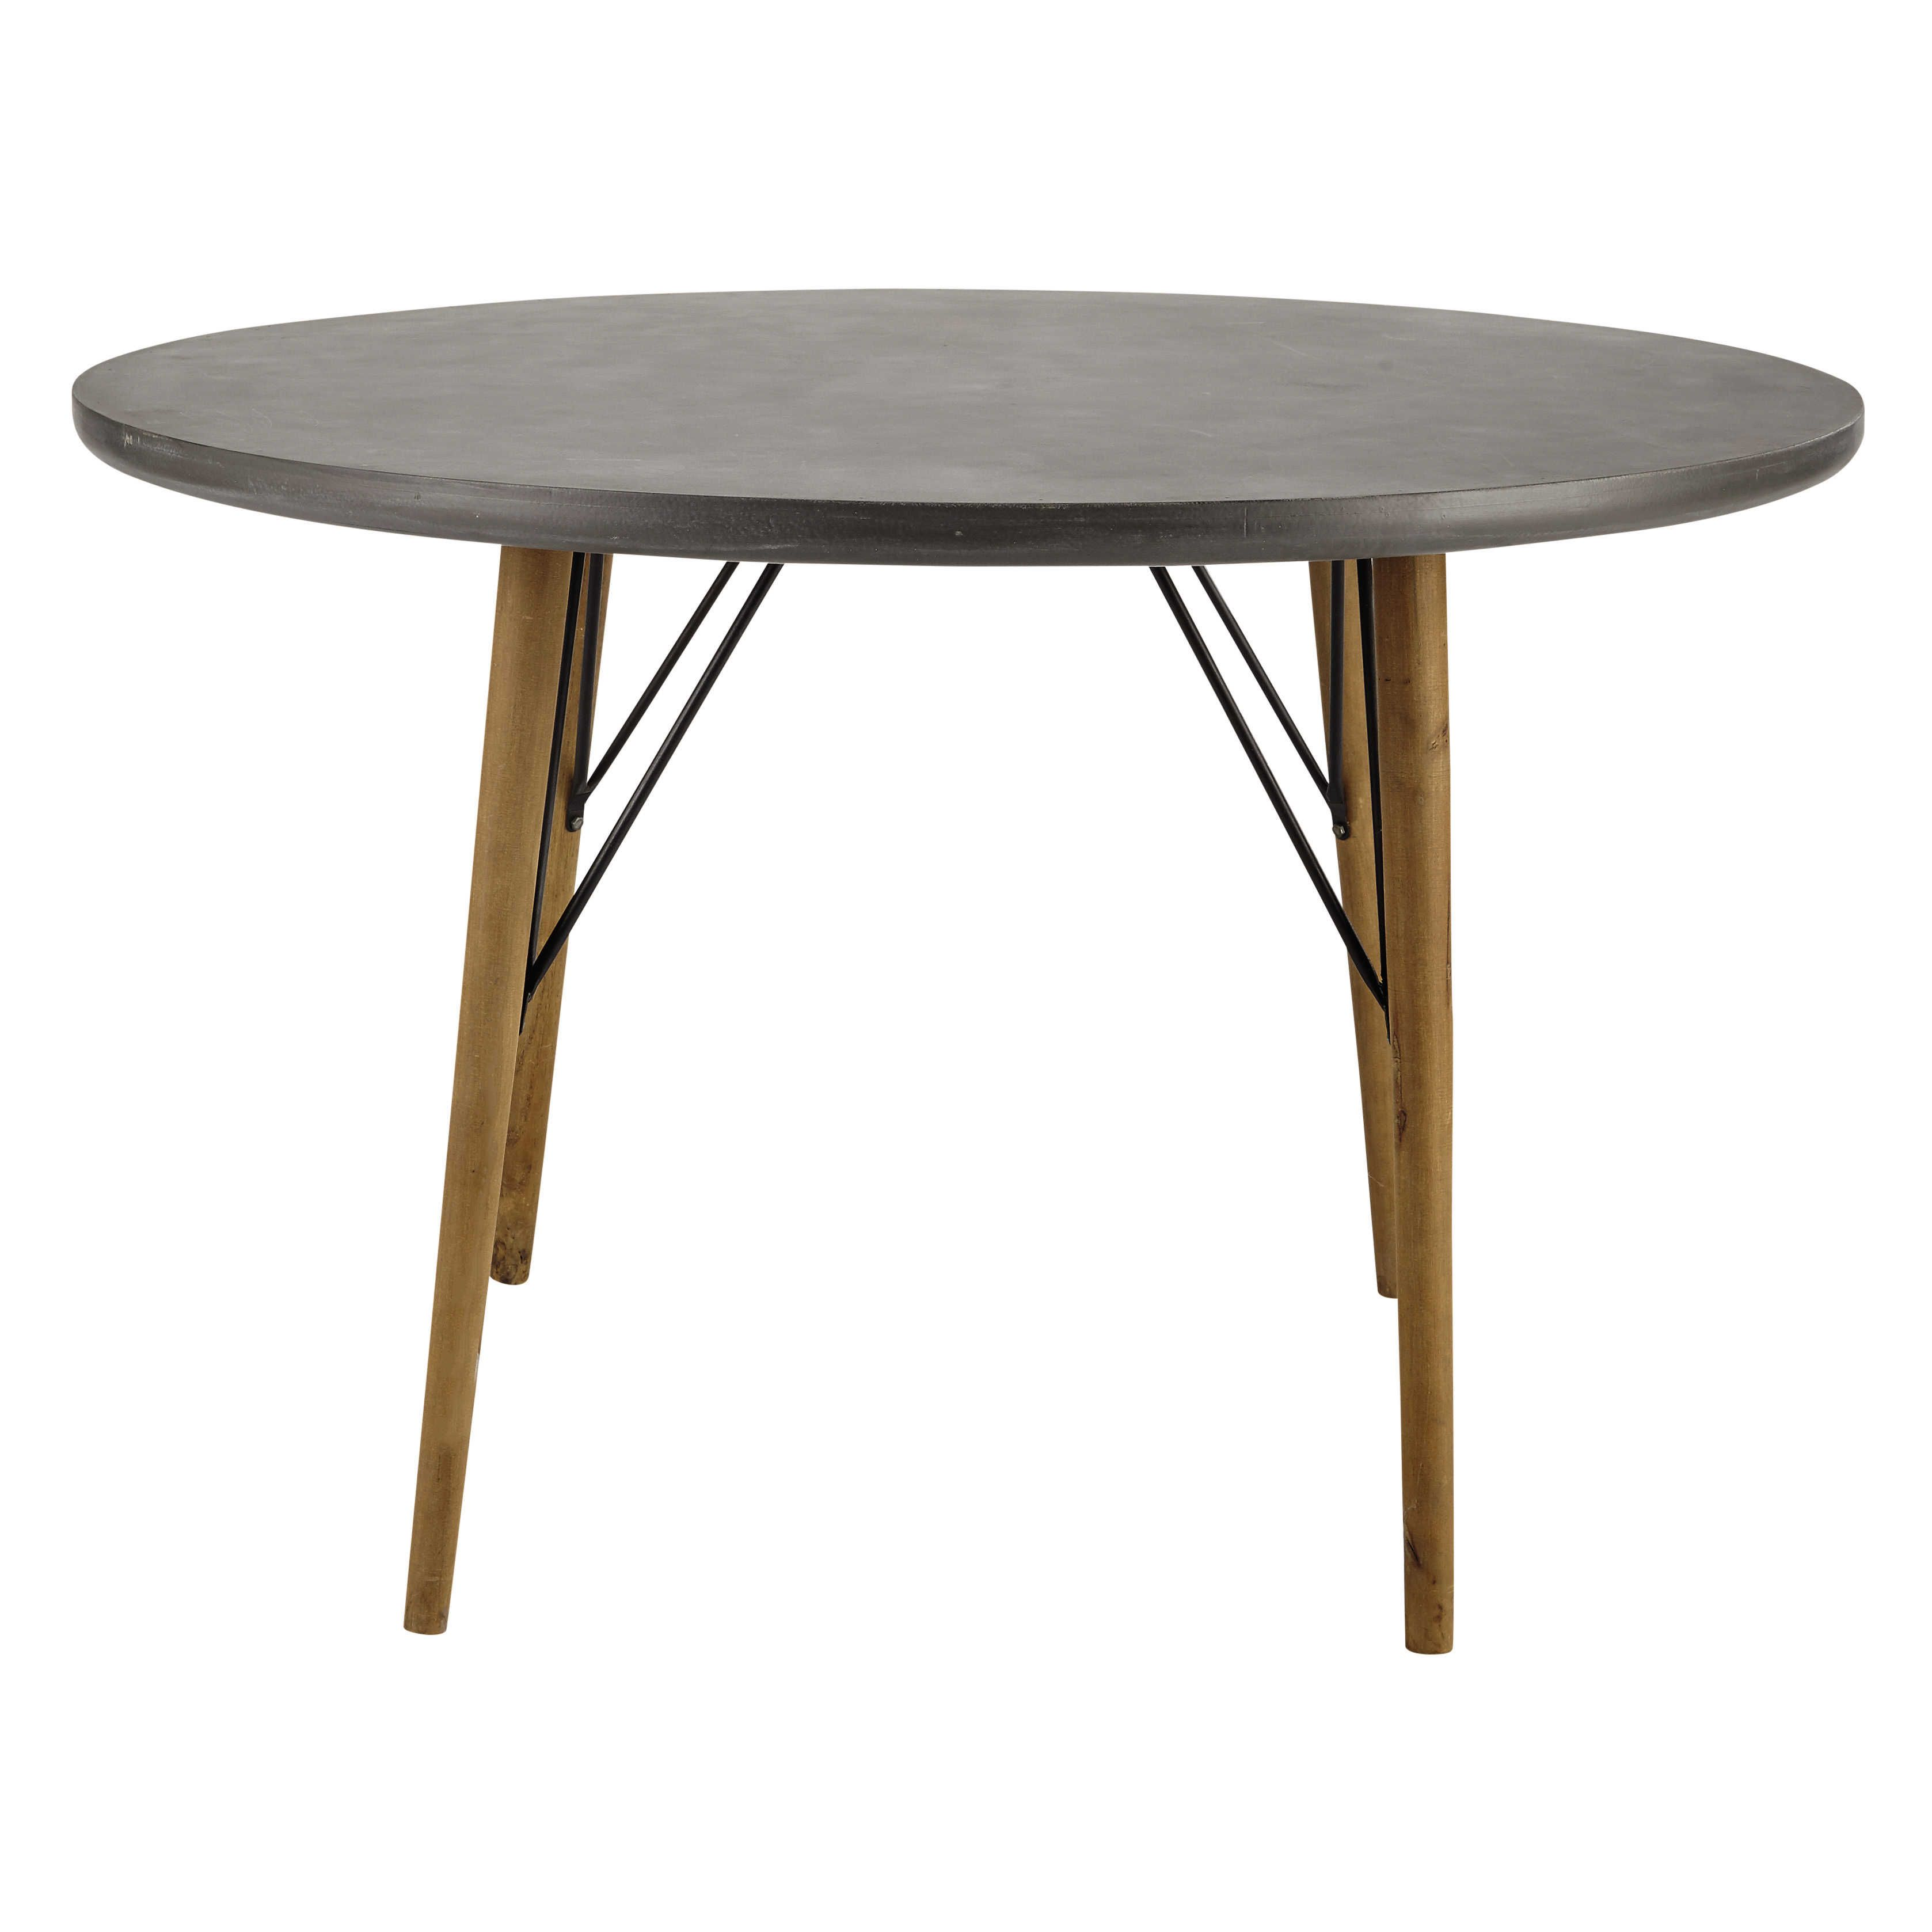 4-Seater Round Dining Table D120